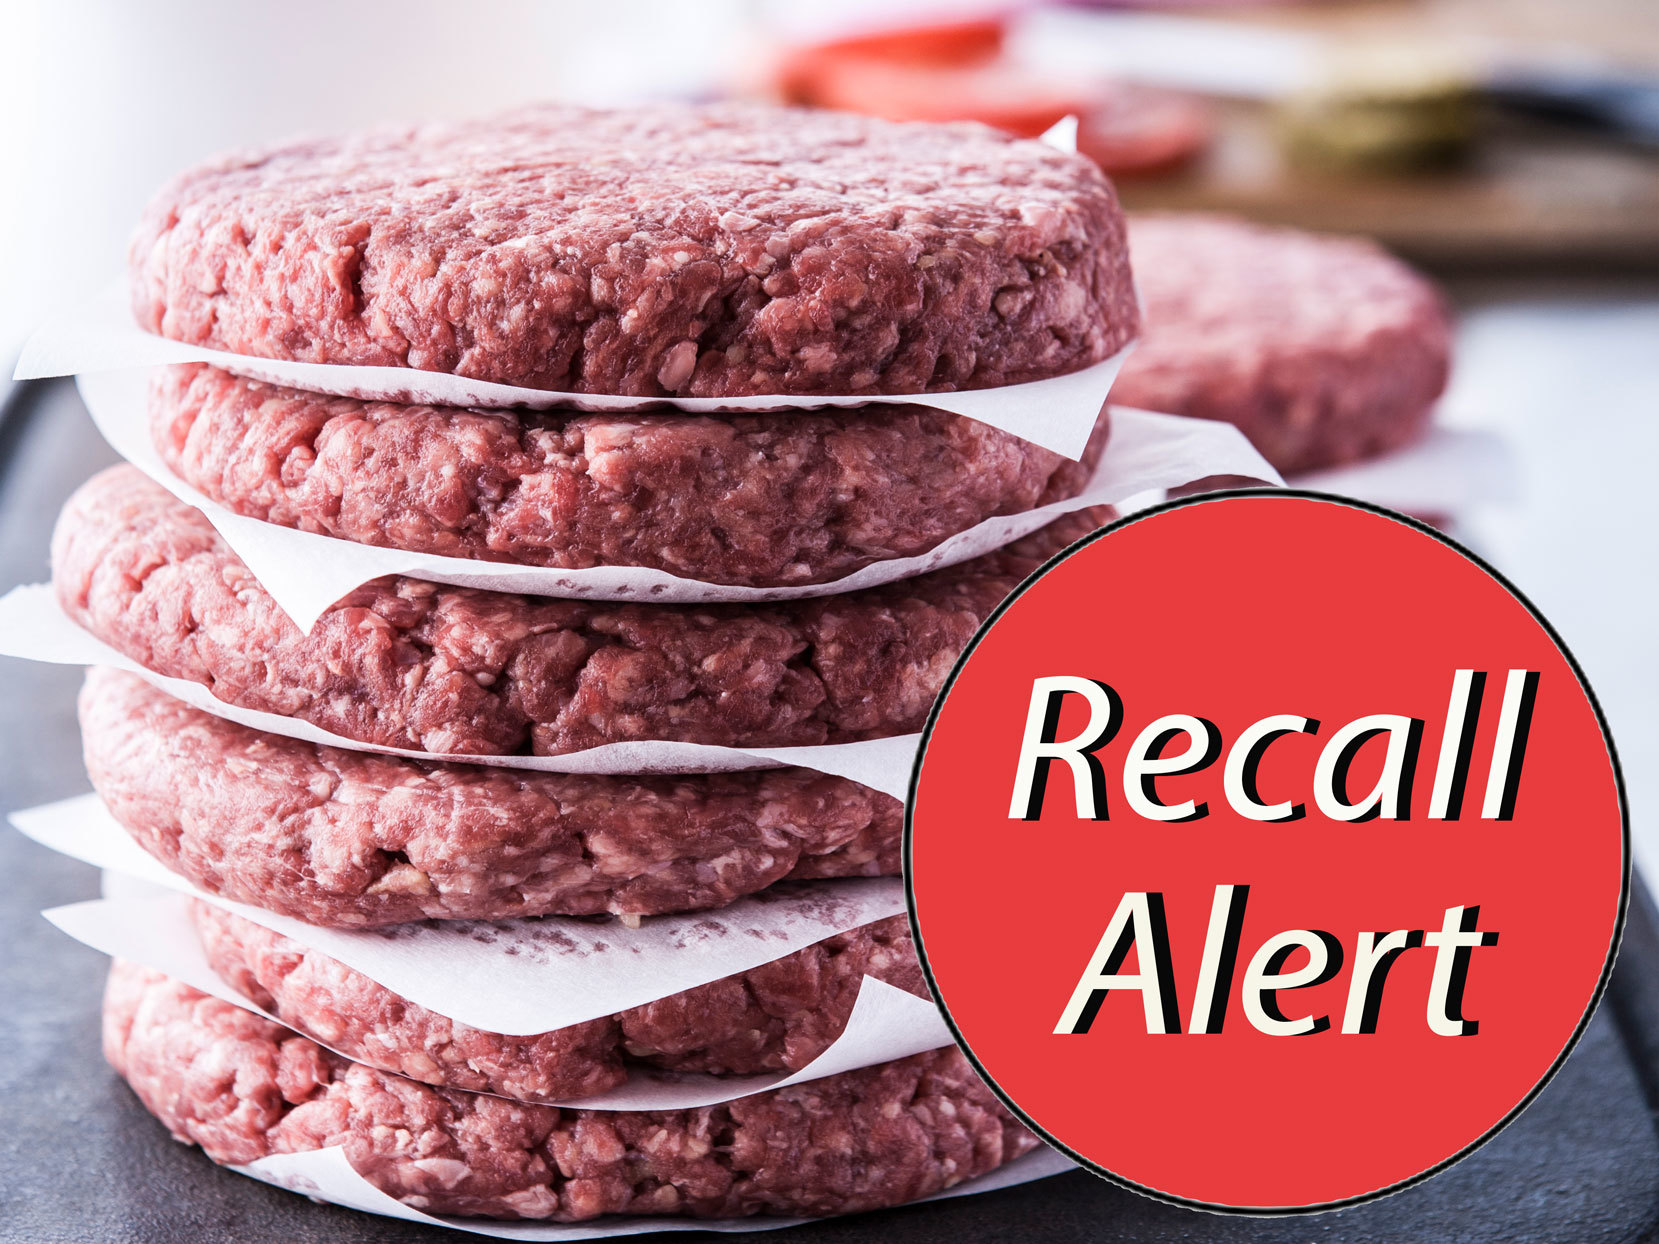 Beef Products Recalled in 10 States Due to E. Coli Concerns